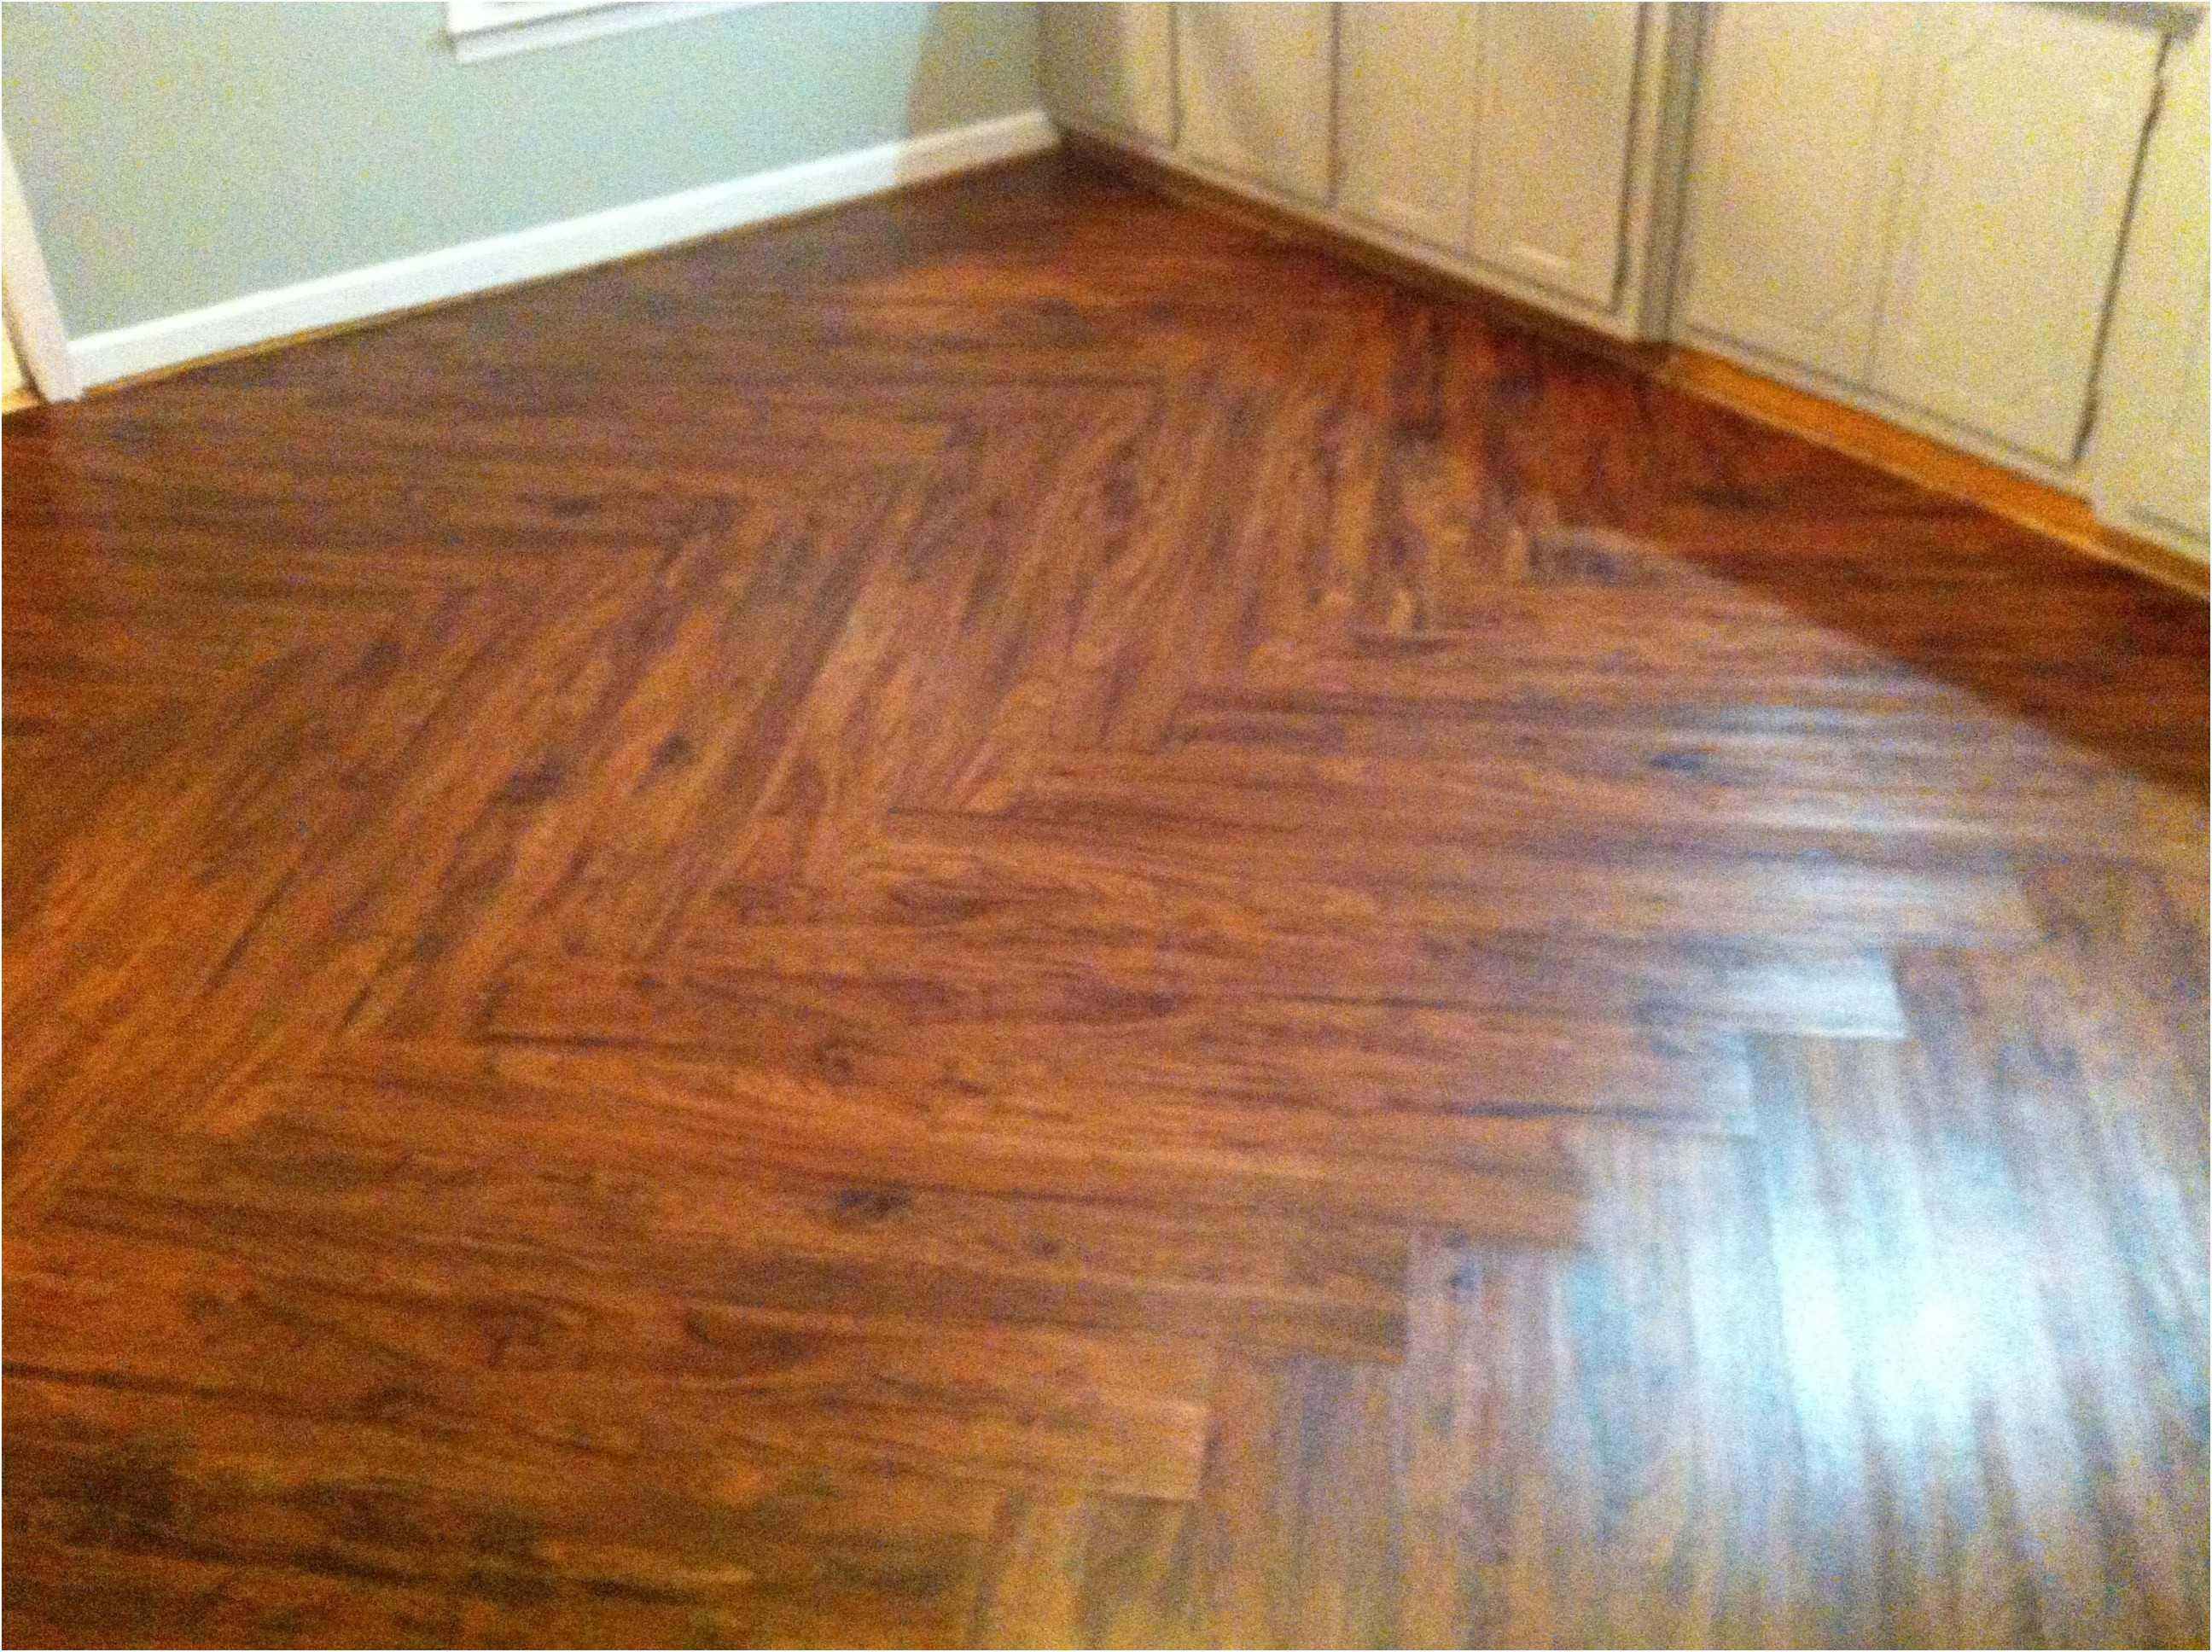 vinyl hardwood flooring installation of how to install allure flooring lovely best way to clean vinyl plank pertaining to how to install allure flooring new hardwood floor home depot best vinyl wood flooring planks vinyl